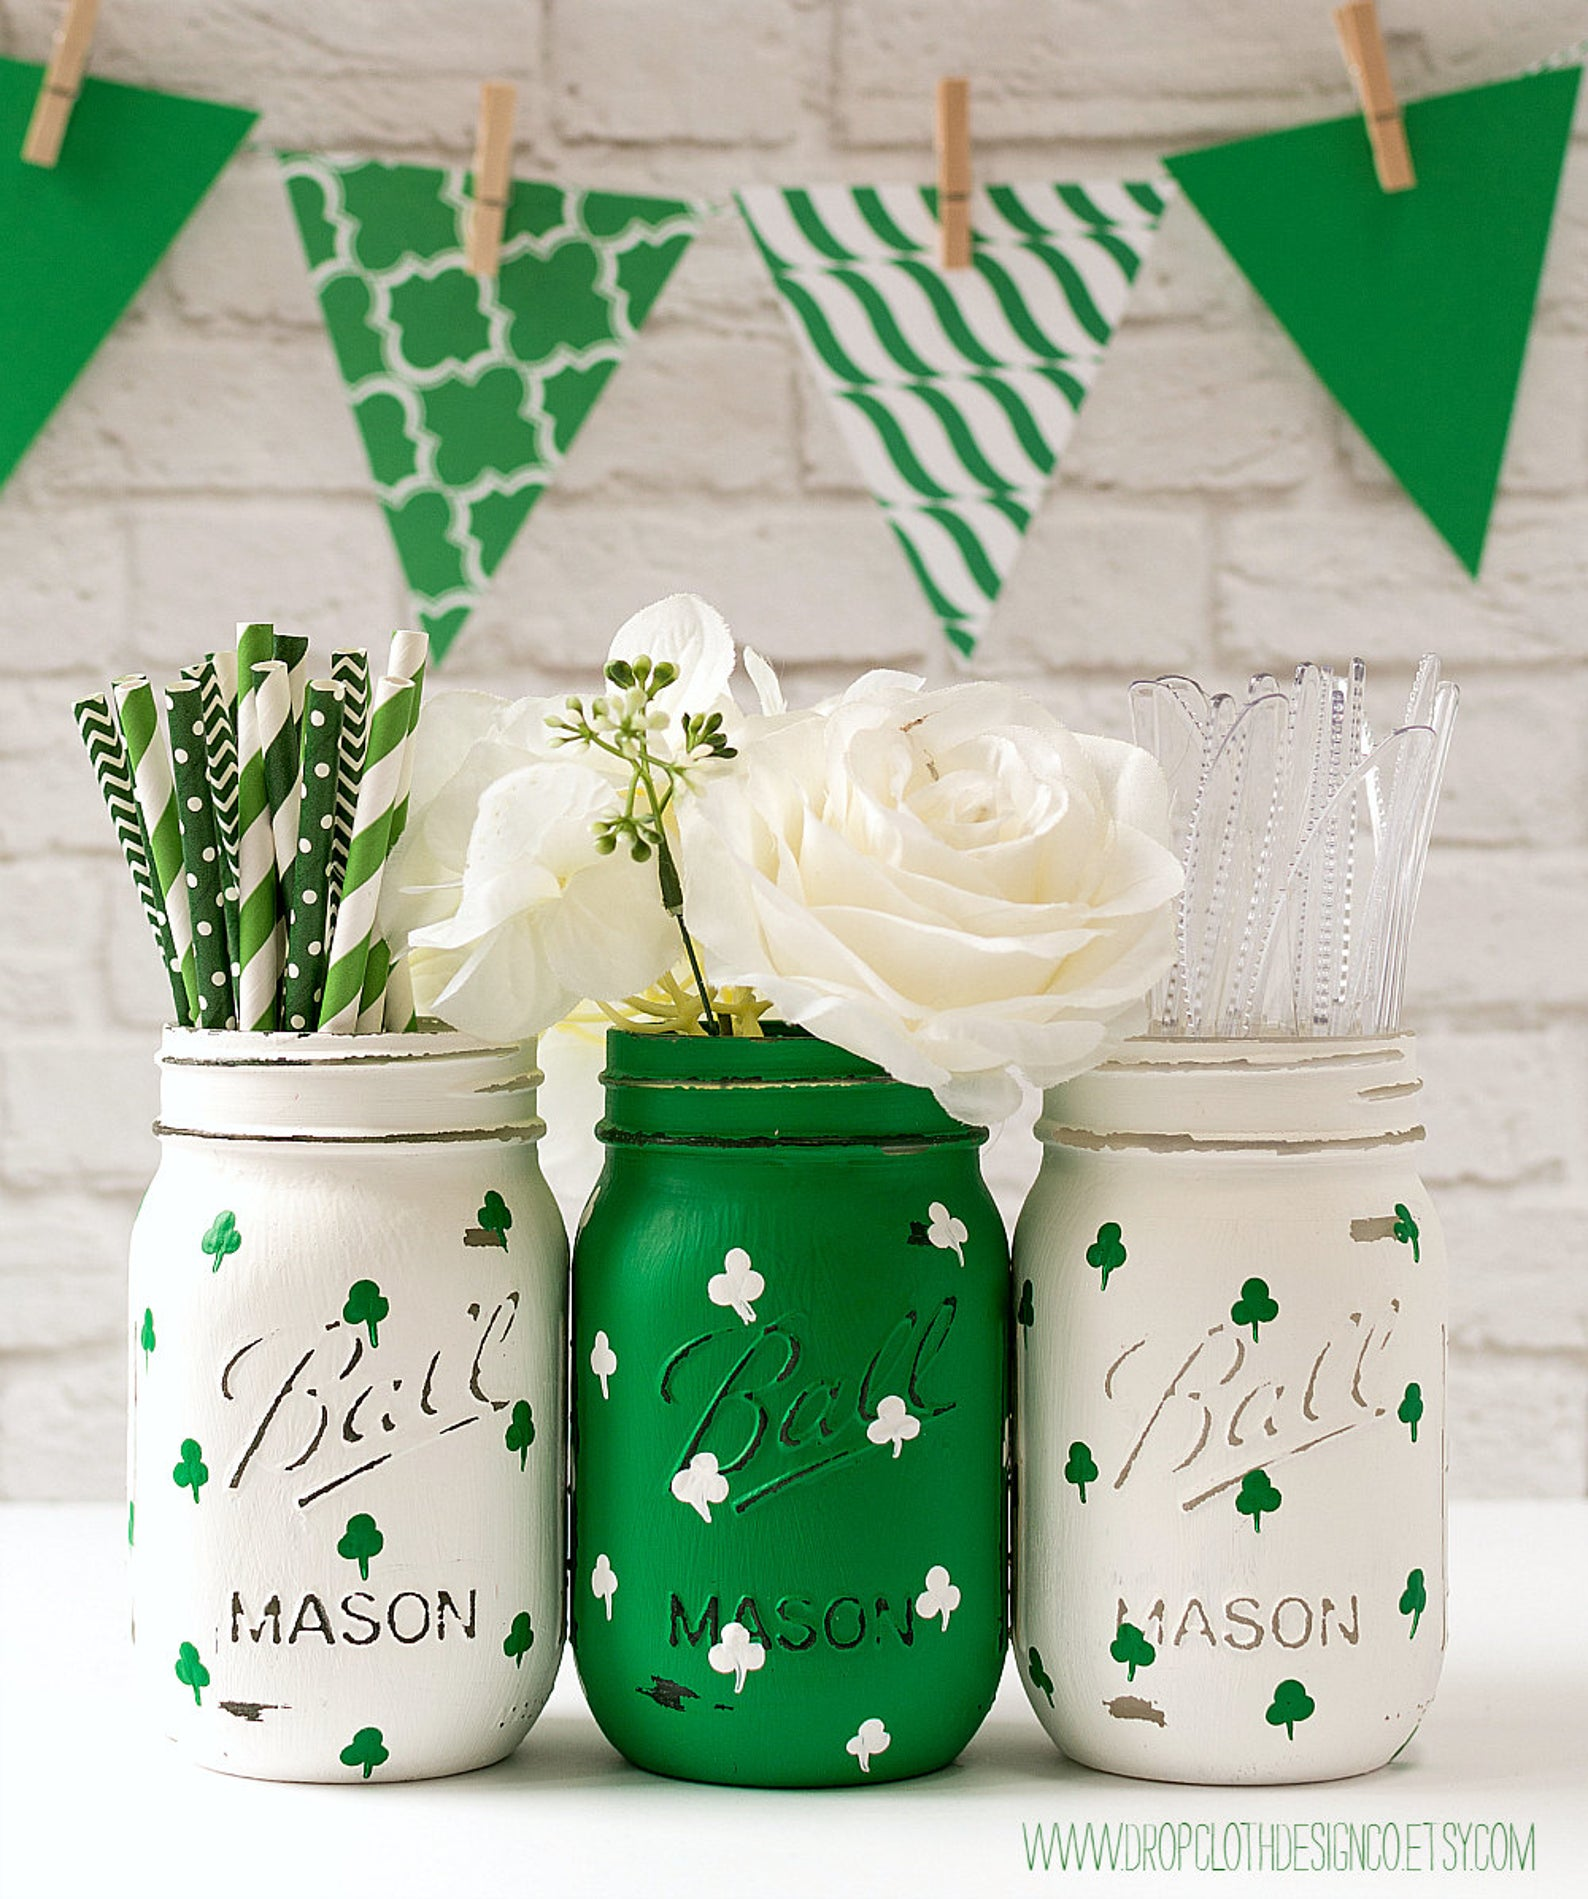 Decoration ideas for St. Patrick & # 39; s Day - Mason jars for St. Patrick & # 39; s Day